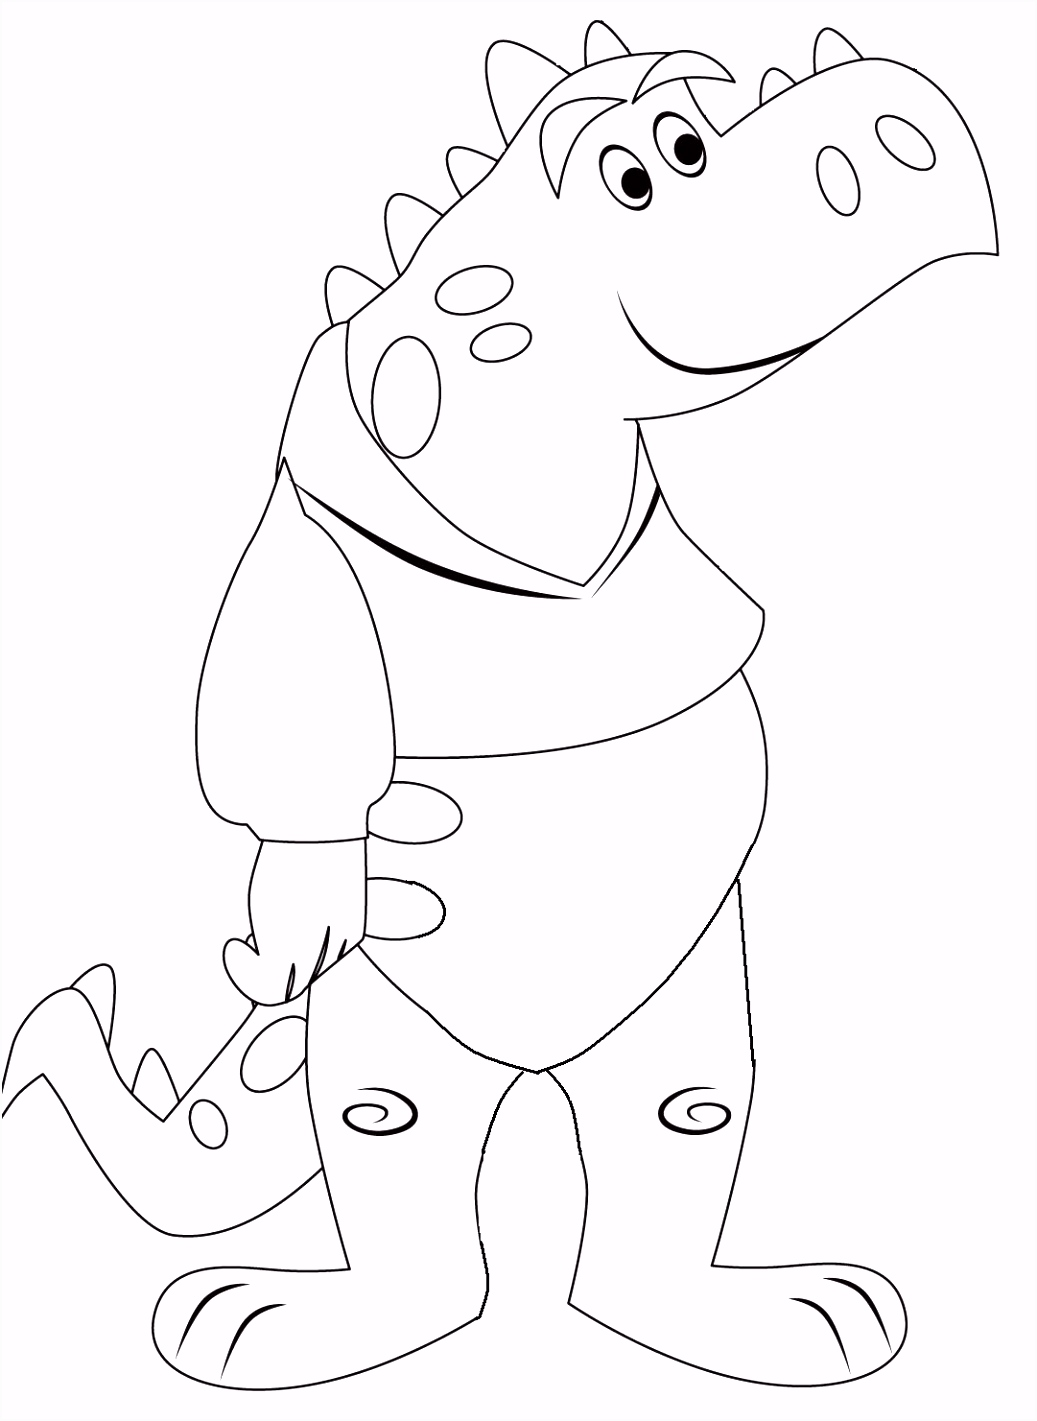 kleurplaat Kamiel Coloring pages Pinterest